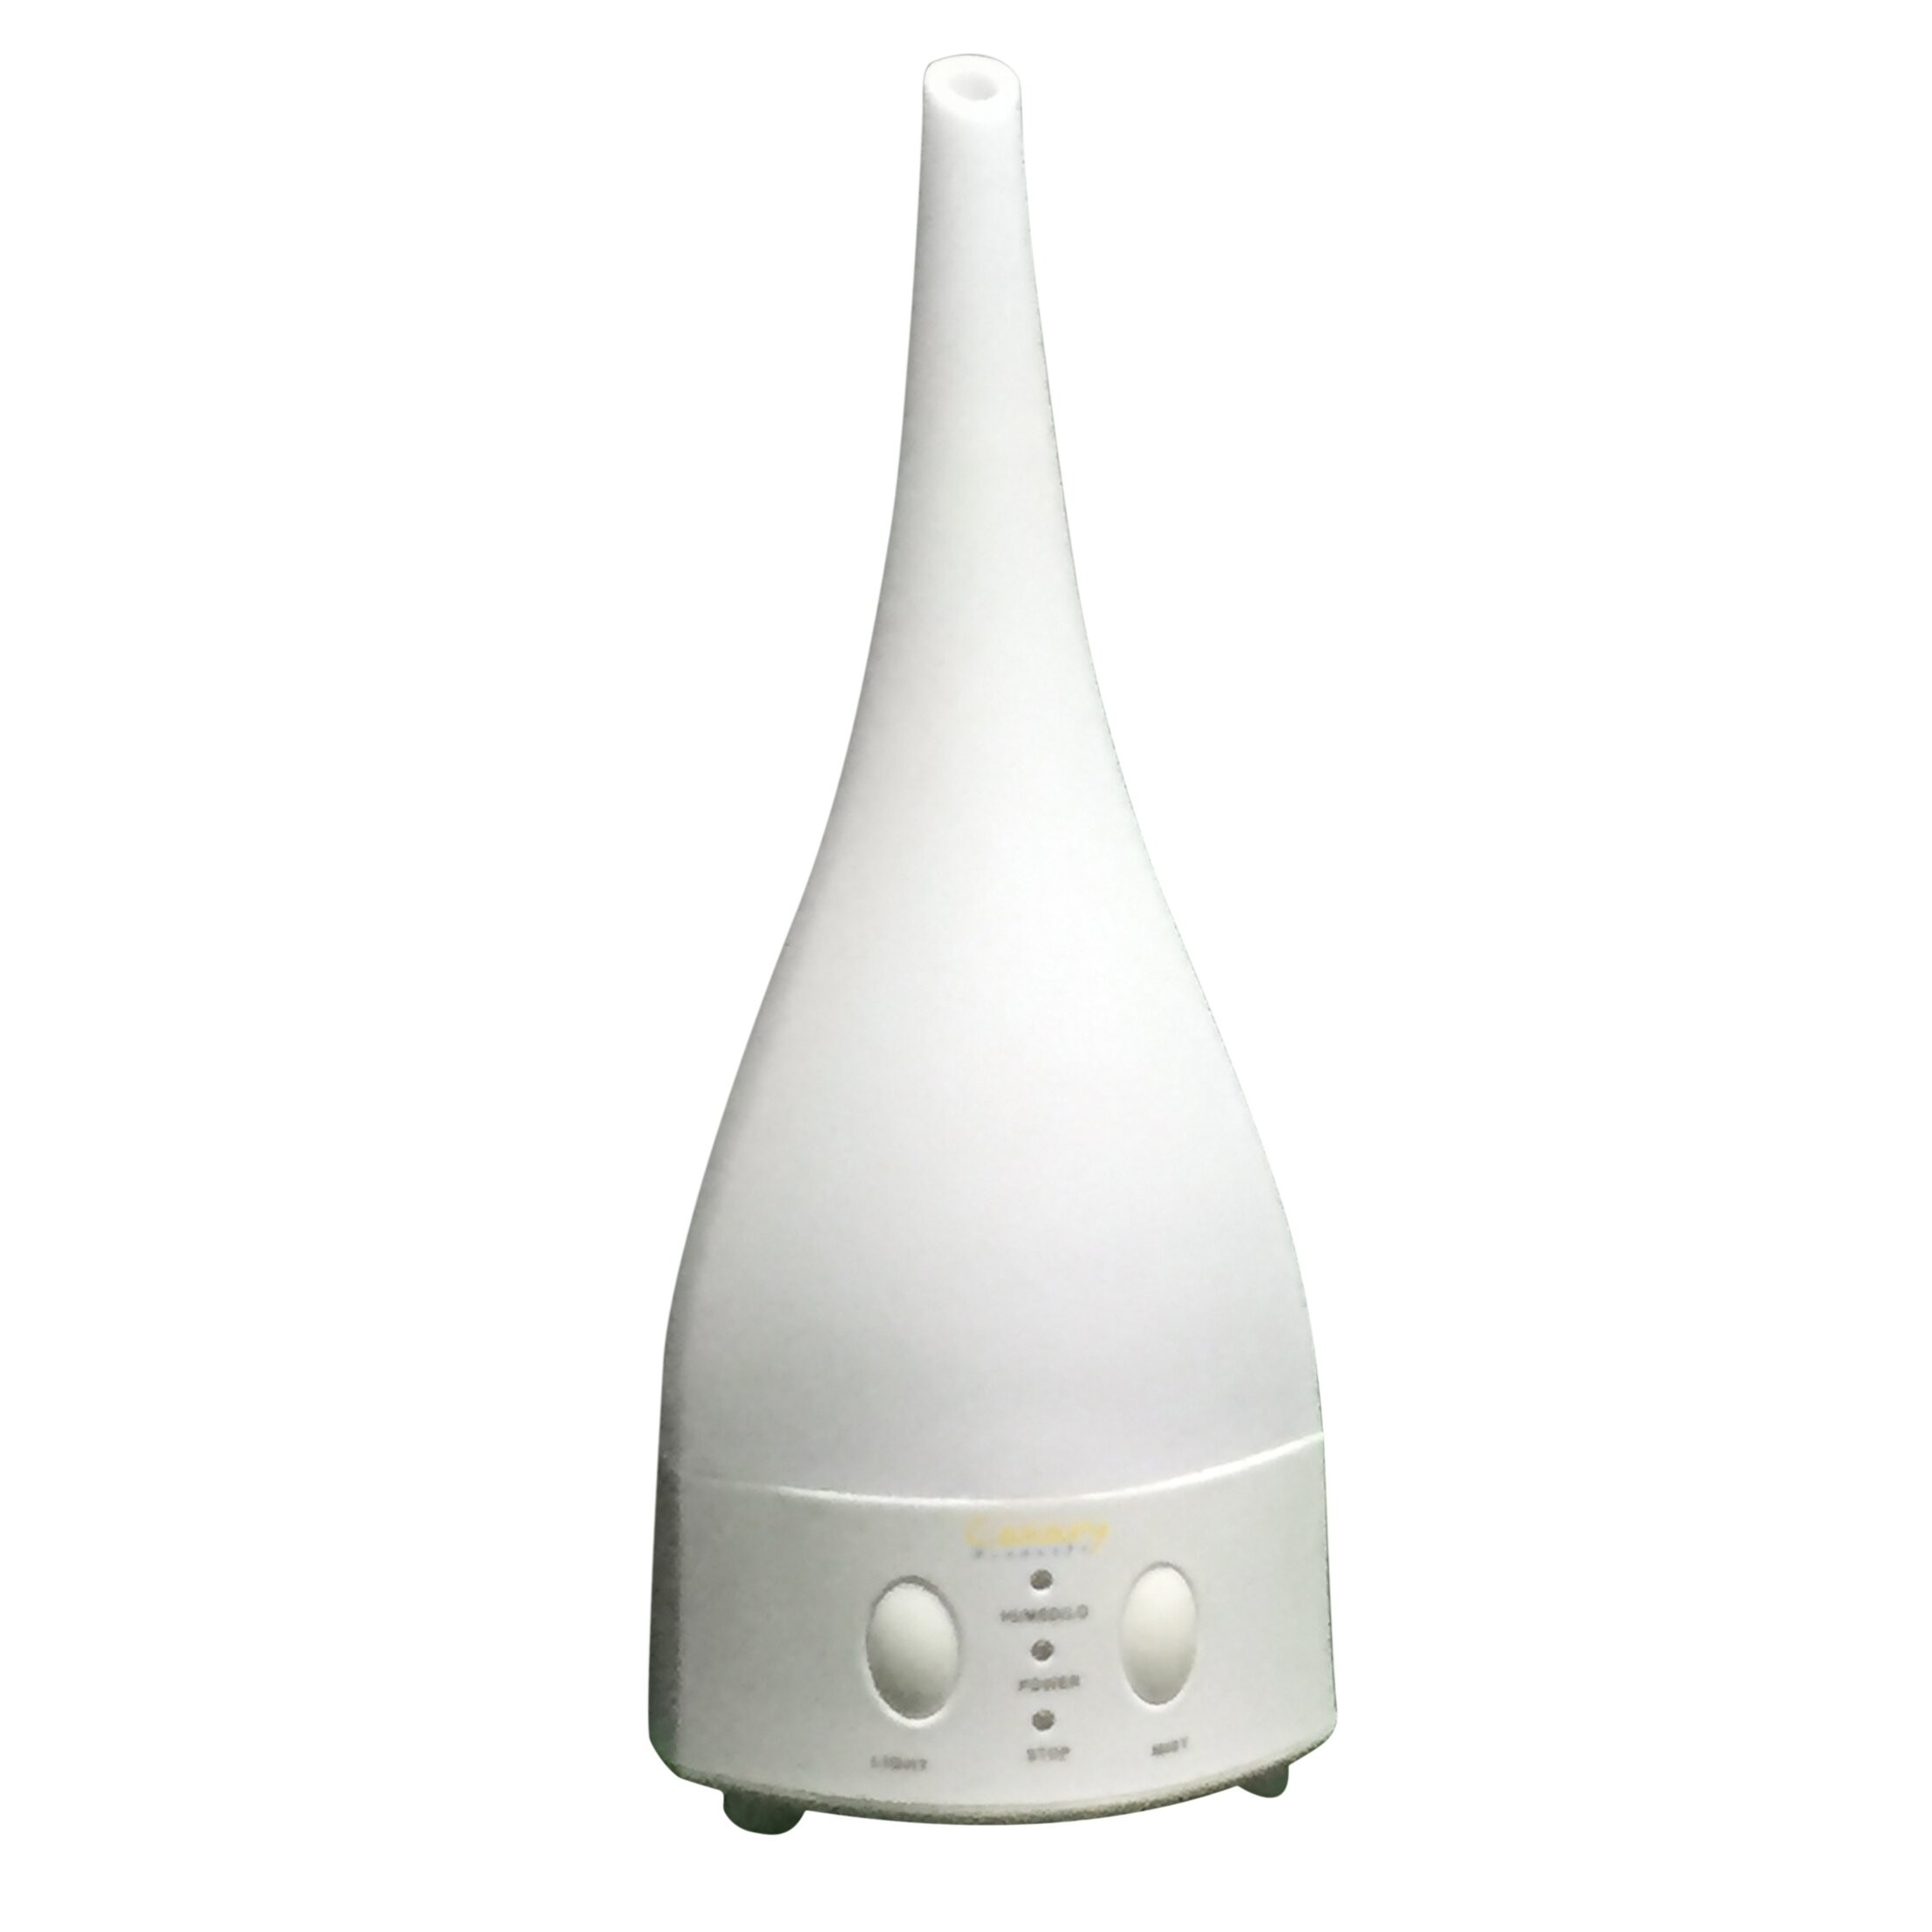 Canary Products Aromatherapy Essential Oil Diffuser and 0.0264 Gal  #41473A